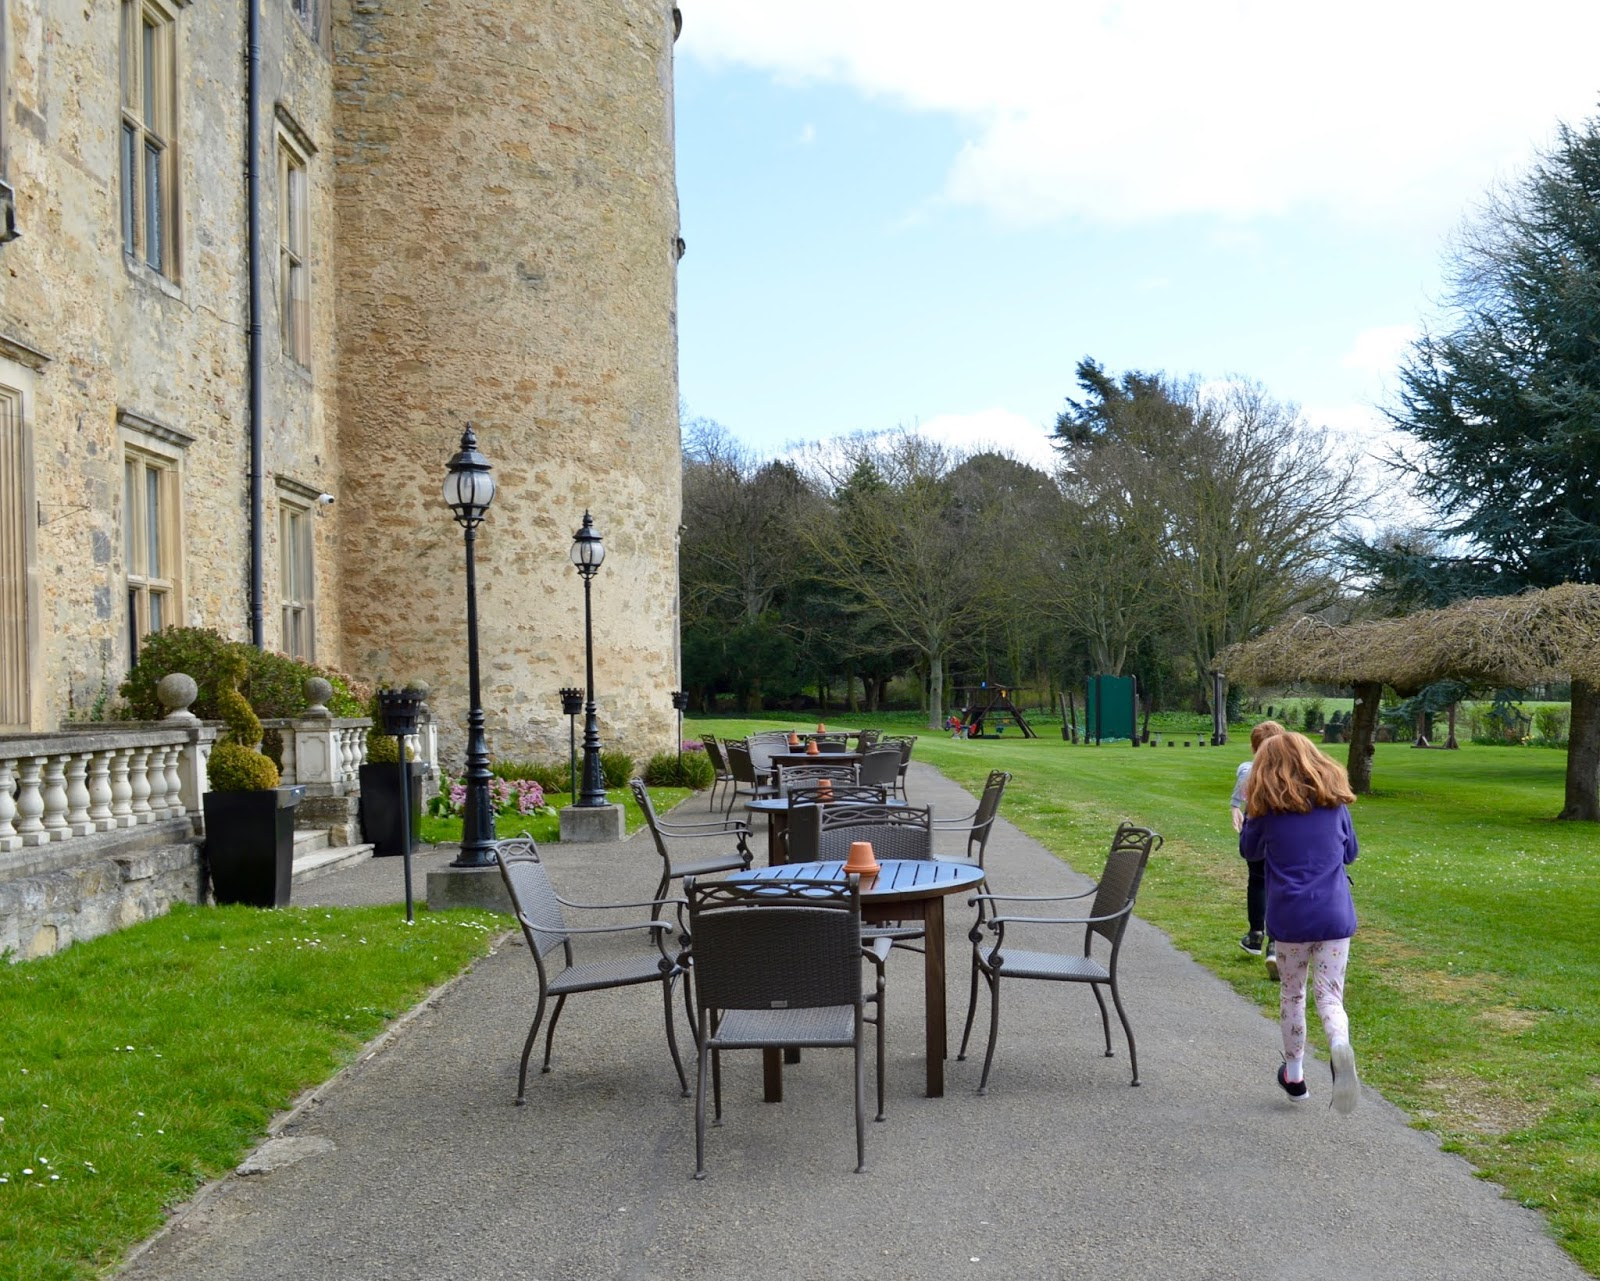 Sunday Lunch, Playgrounds & Birds of Prey at Walworth Castle, Darlington  = outdoor terrace overlooking park